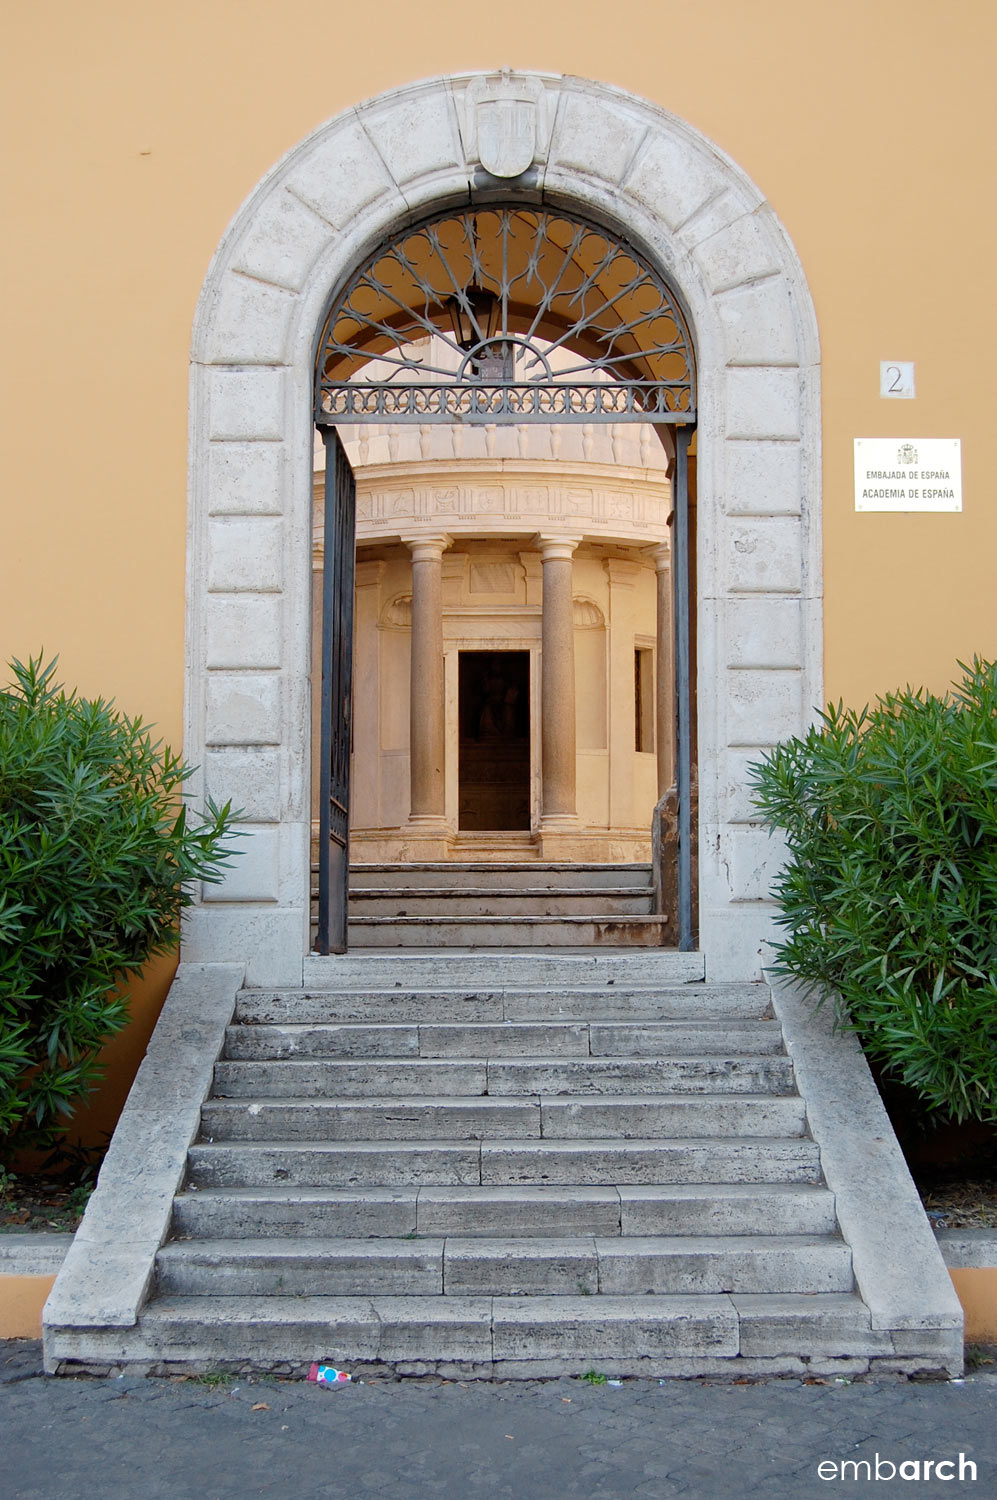 Tempietto - exterior view from the street